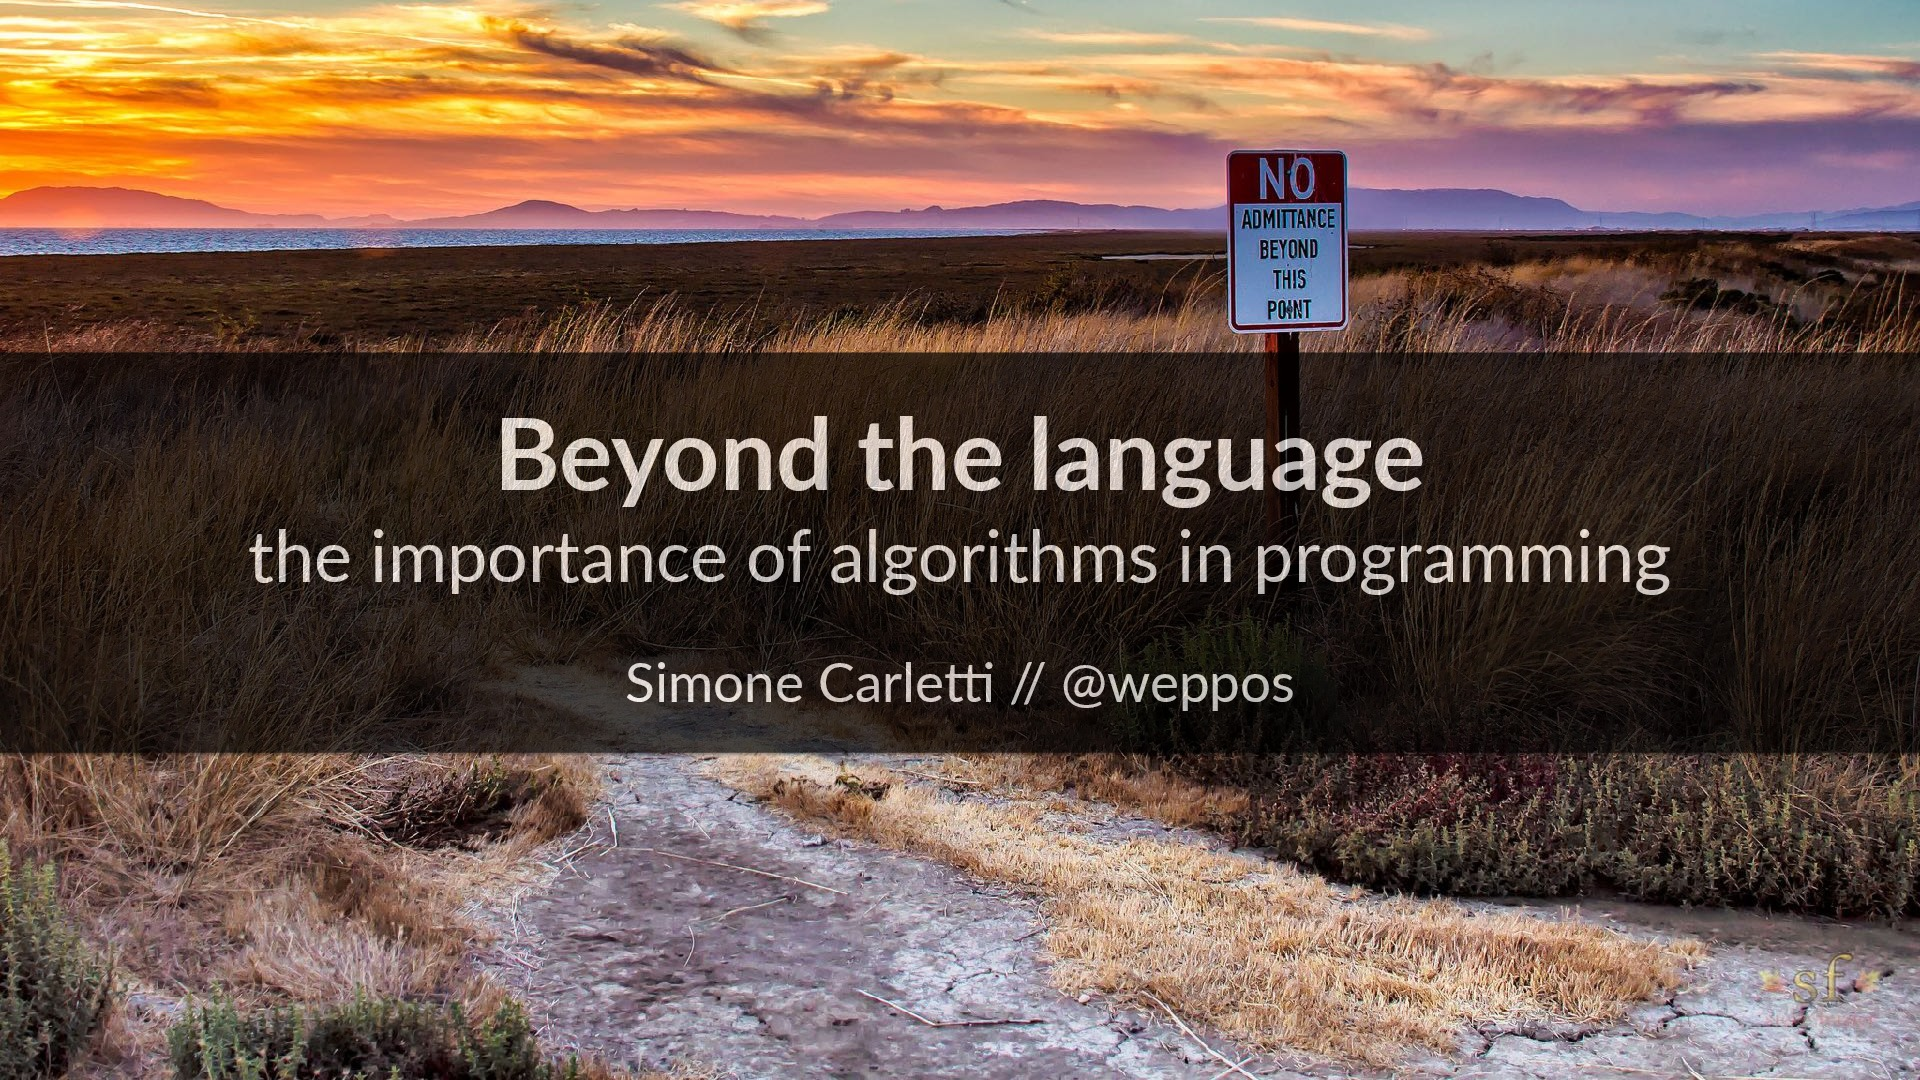 Beyond the language: the importance of algorithms (CodeMash 2017)